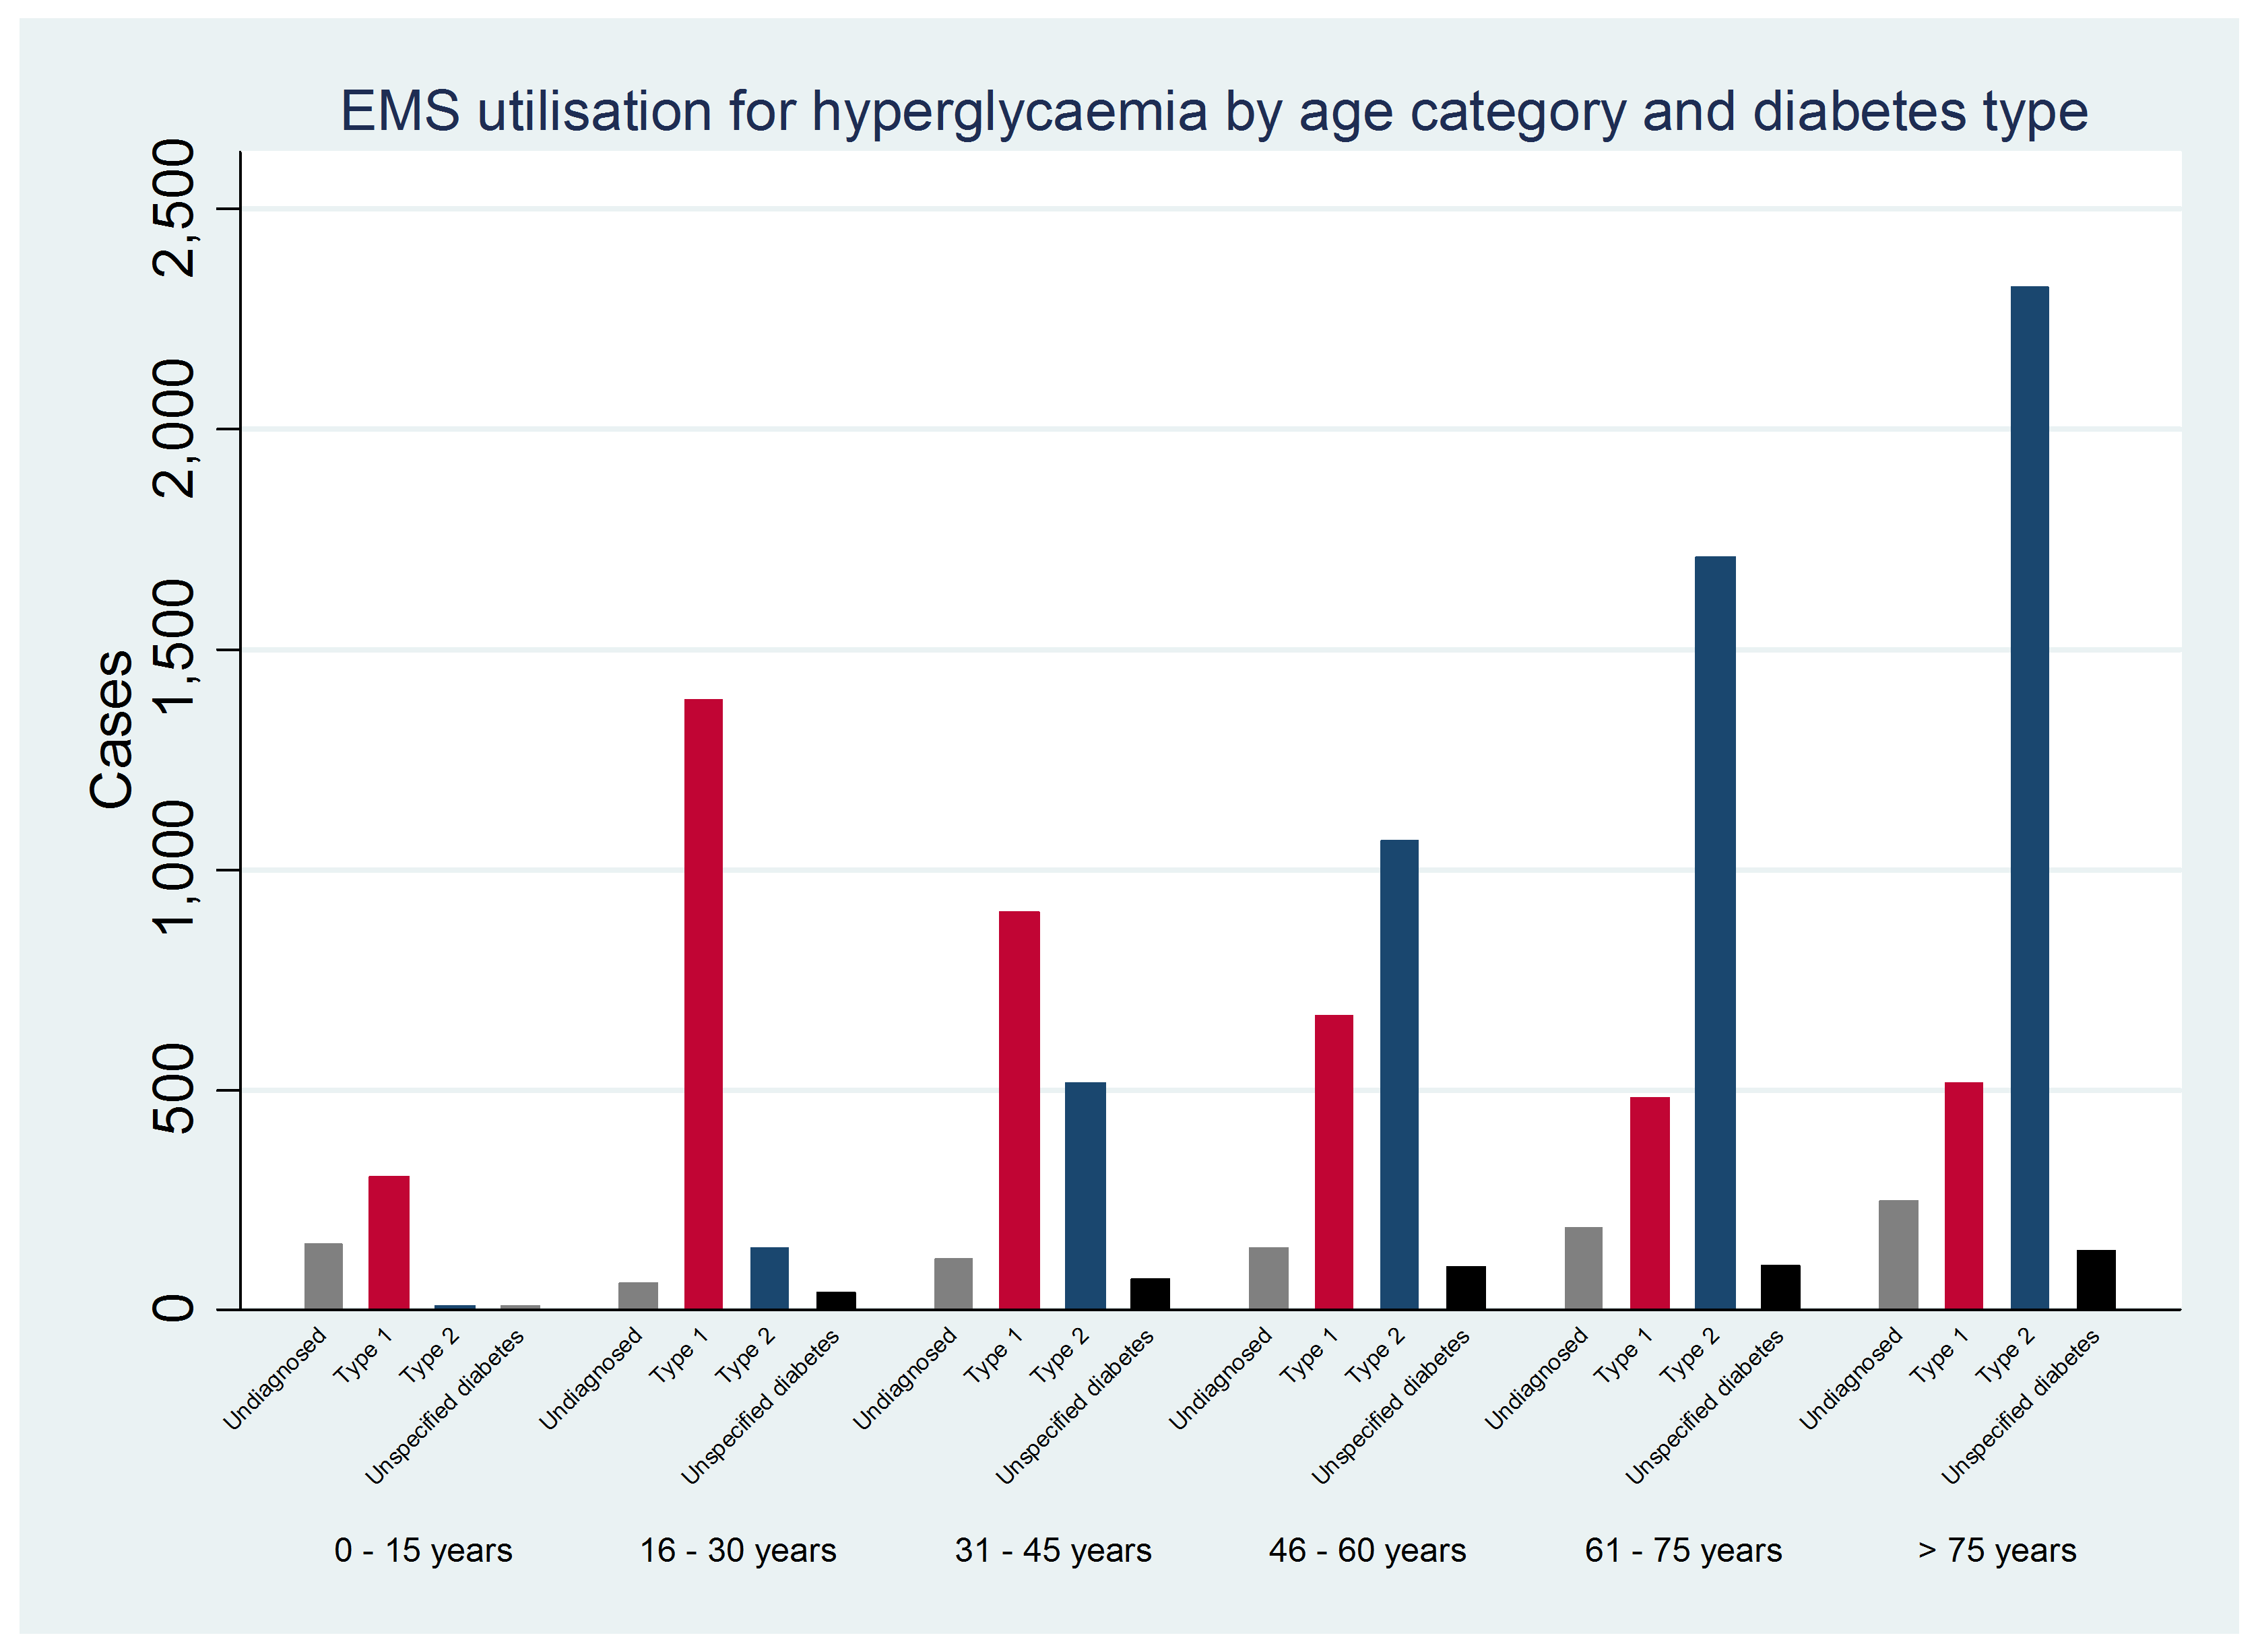 574bc719777d8-EMS+utilisation+for+hyperglycaemia+by+age+category+and+diabetes+type.png